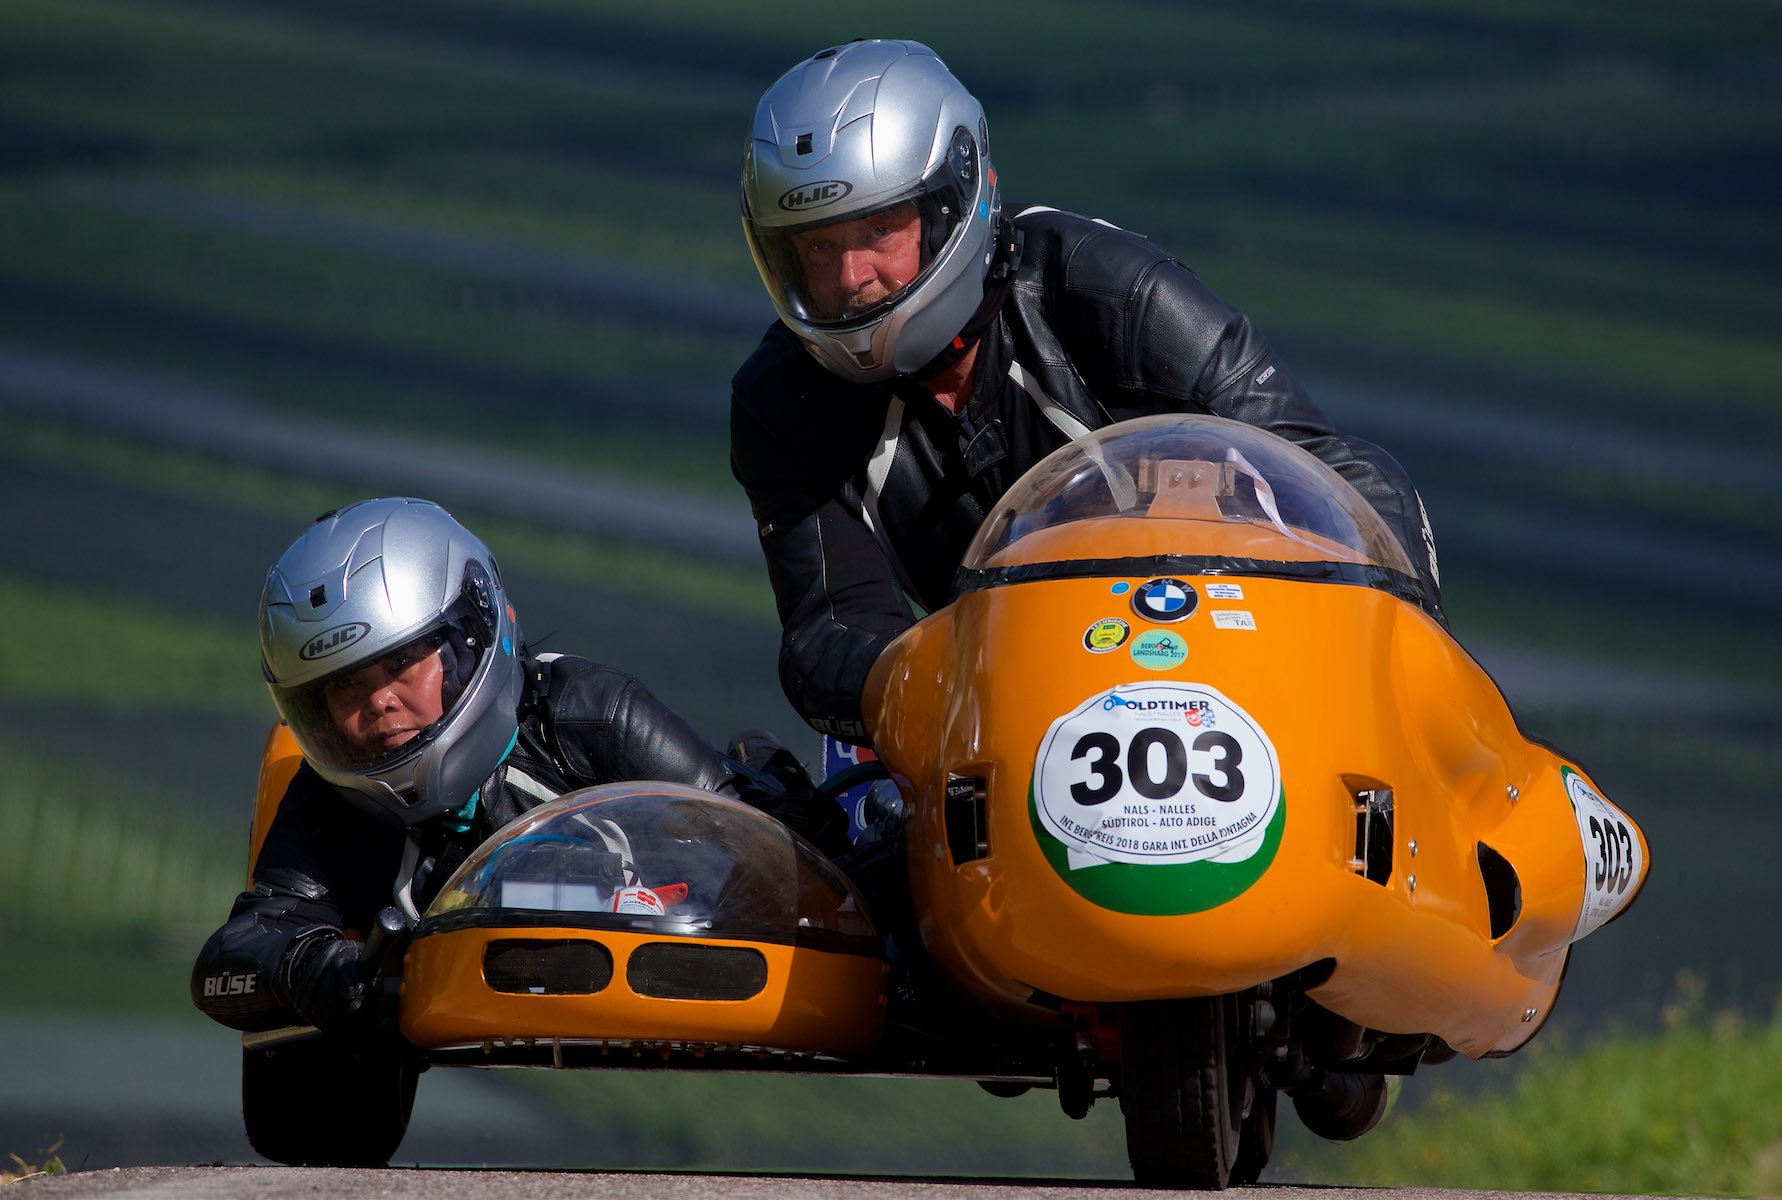 BMW With Sidecar